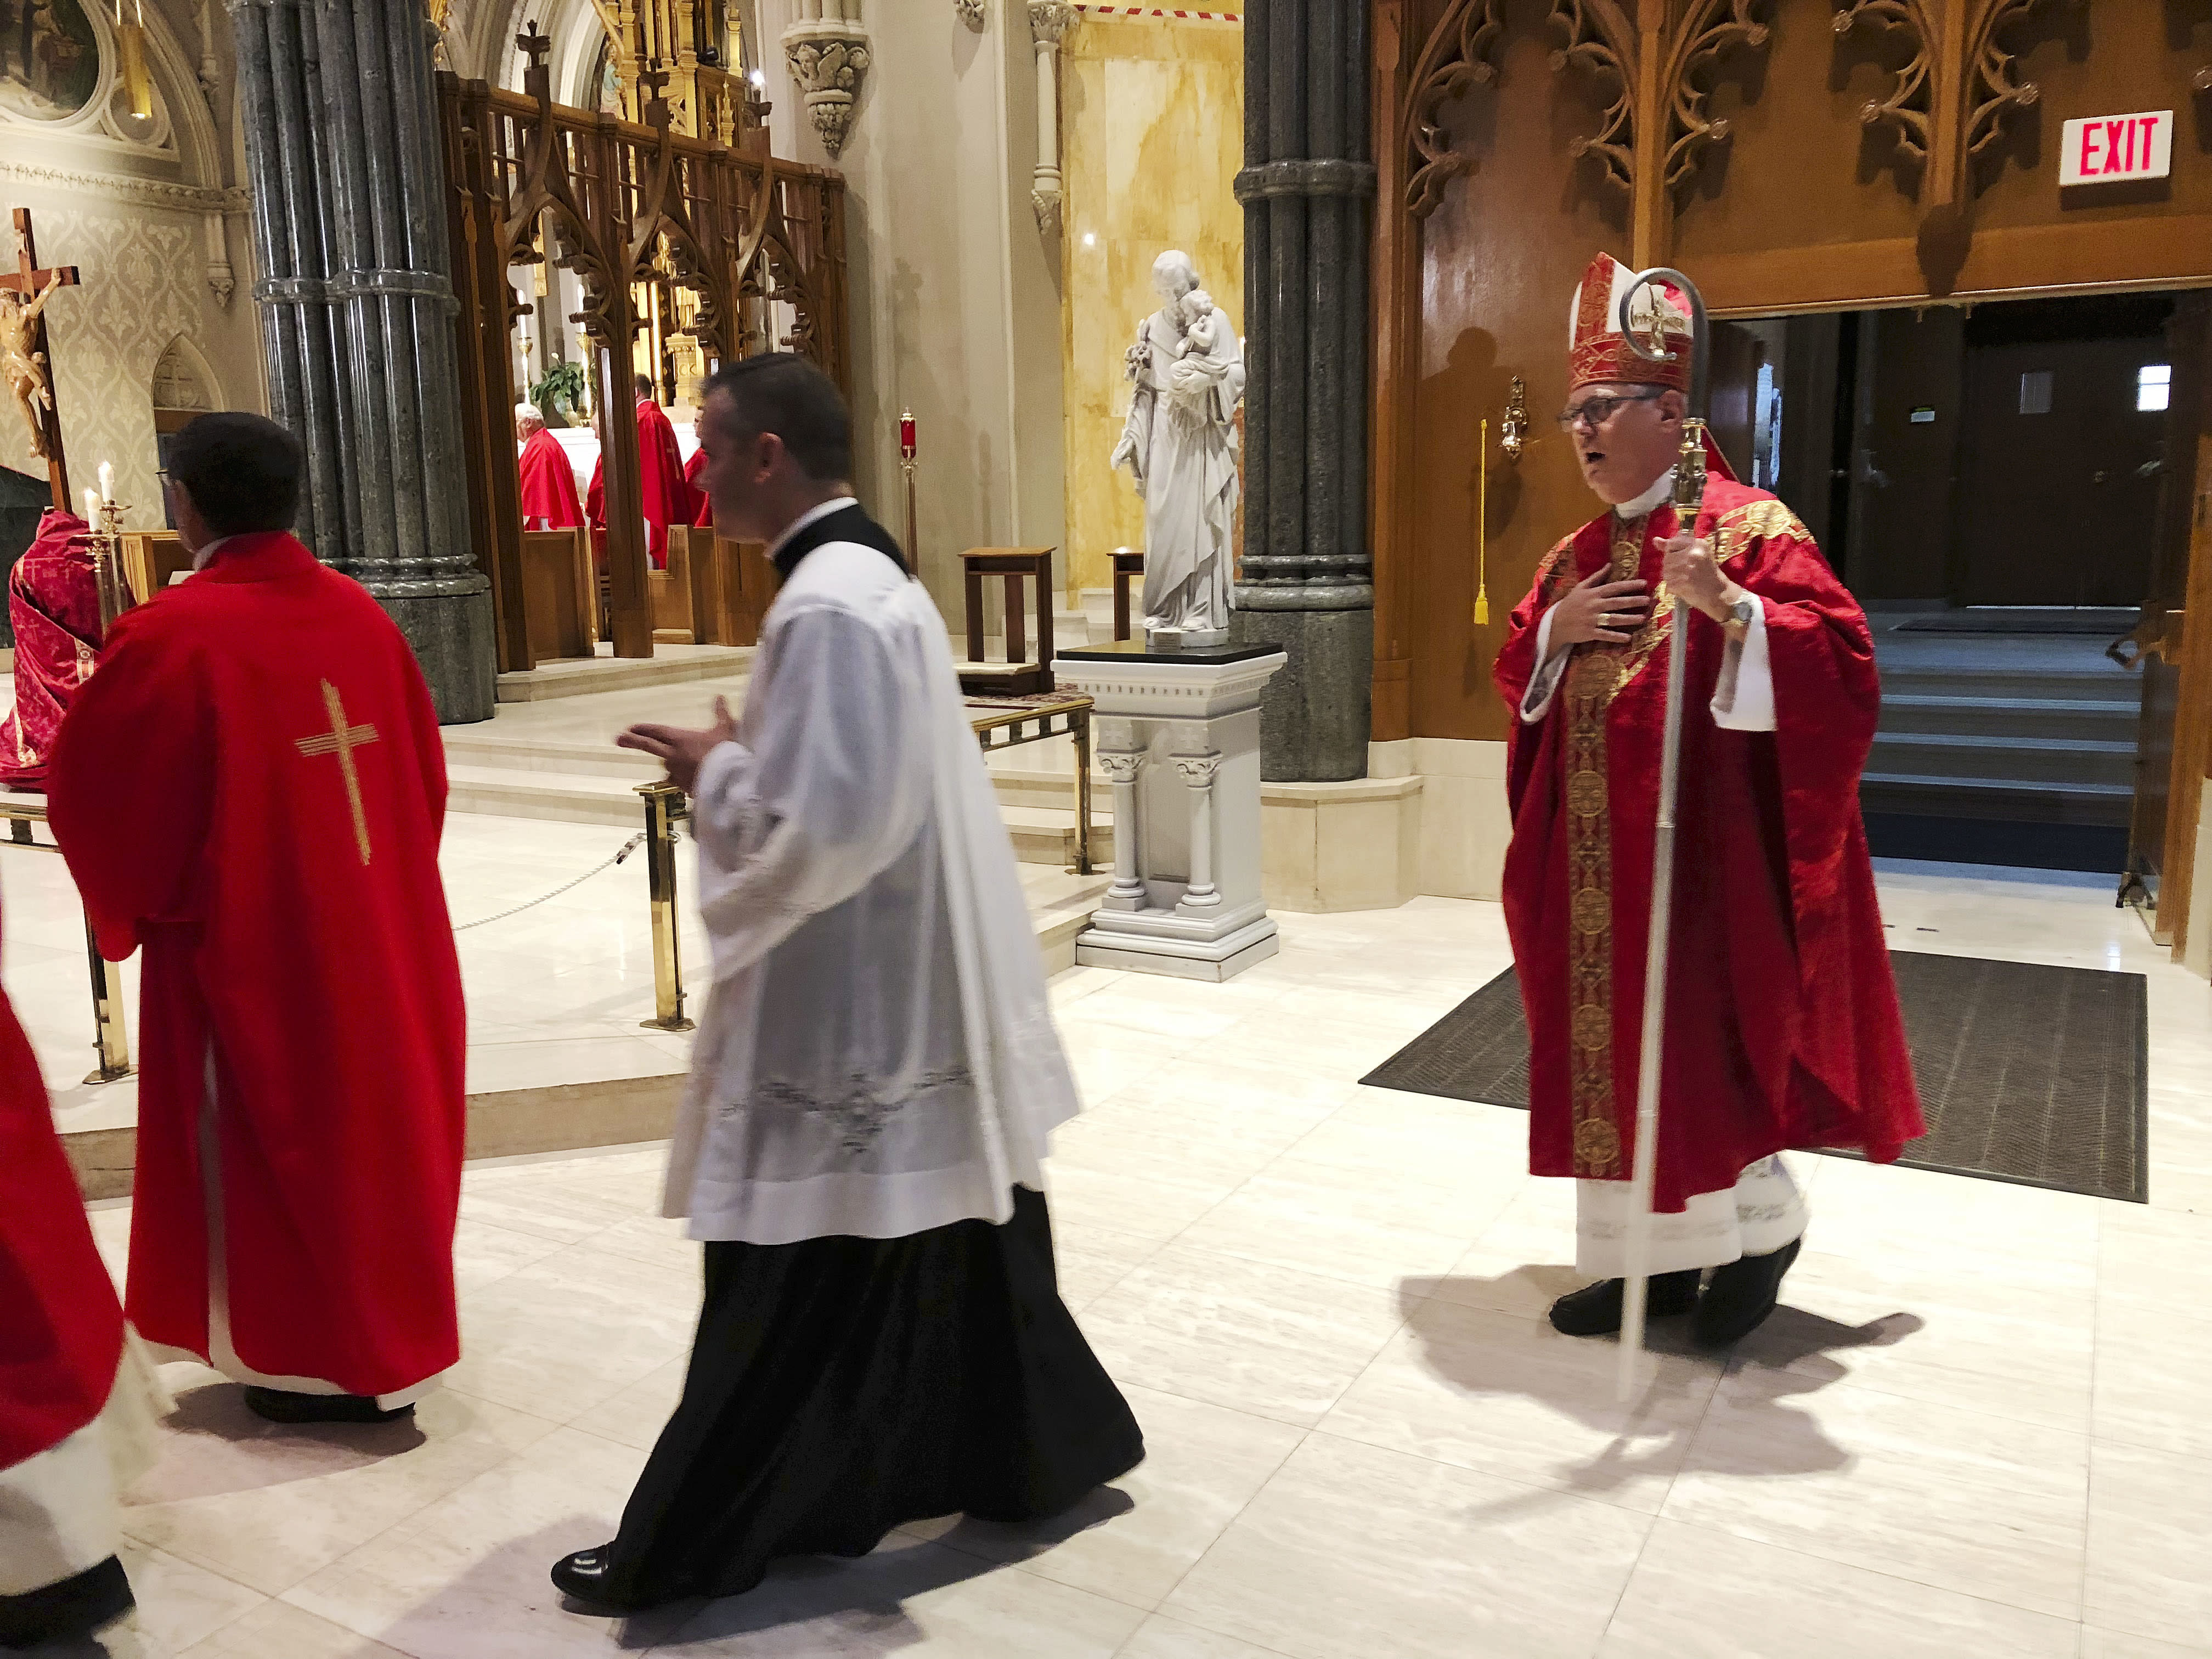 Bishop holds day of prayer and penance amid abuse scandal